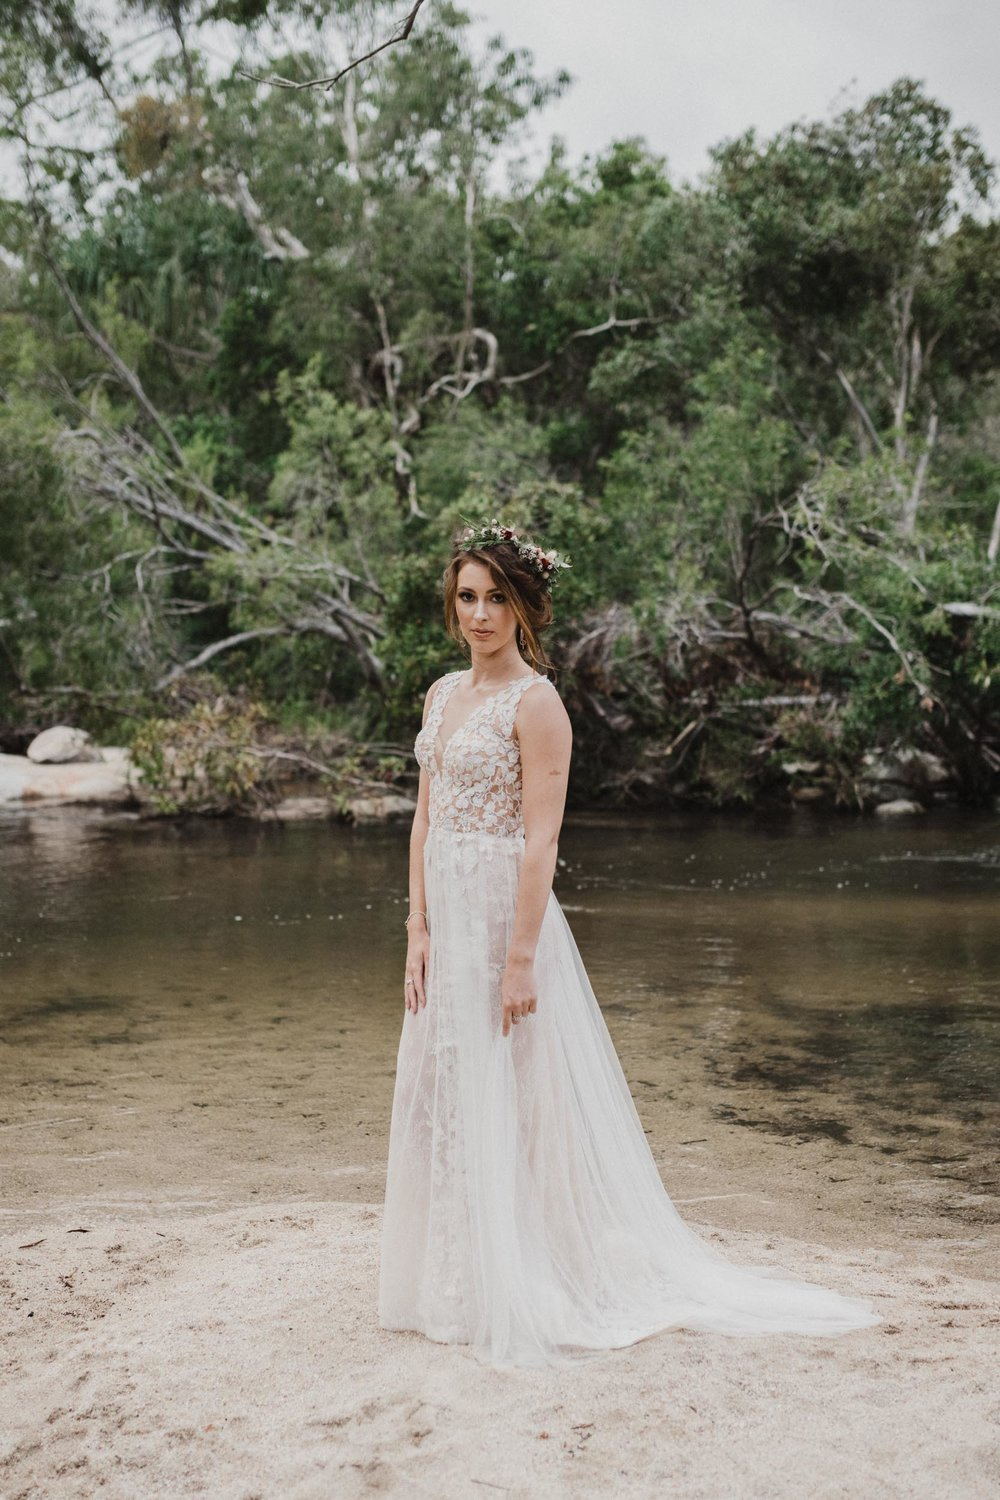 The Raw Photographer - Cairns Wedding Photographer - Brides Styled Shoot - Dress Jonovia Bridal - Hair Makeup Ideas-36.jpg